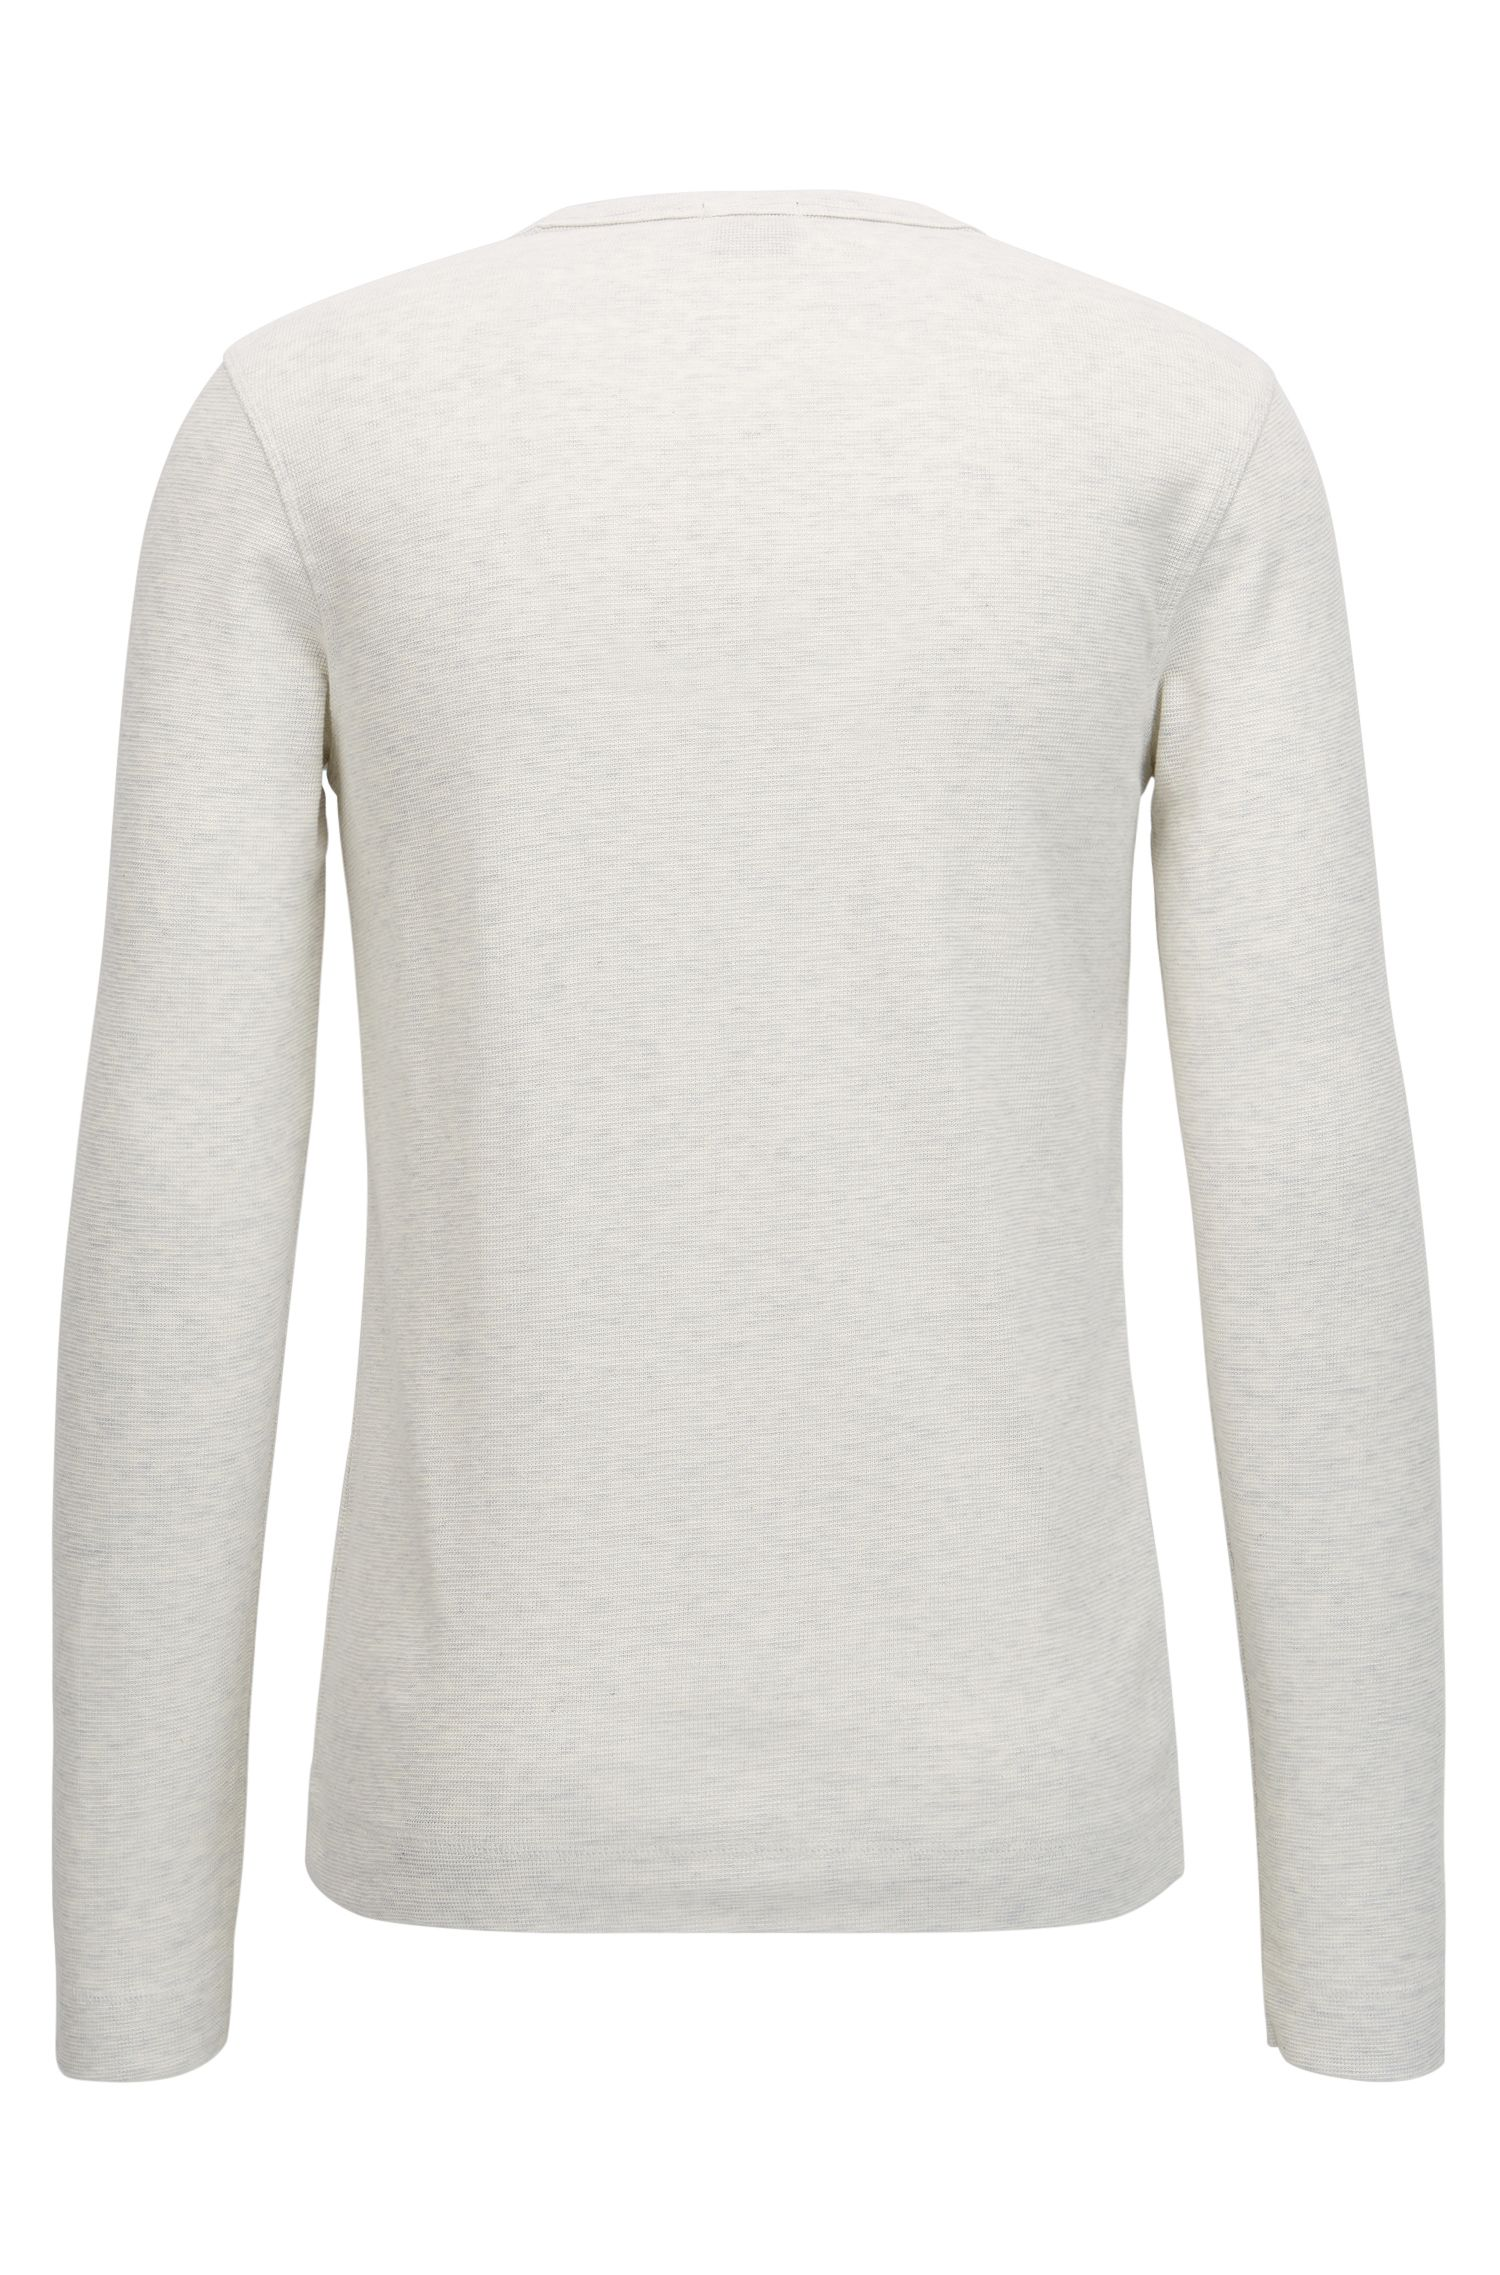 Slim-fit long-sleeved T-shirt in heathered cotton, Natural